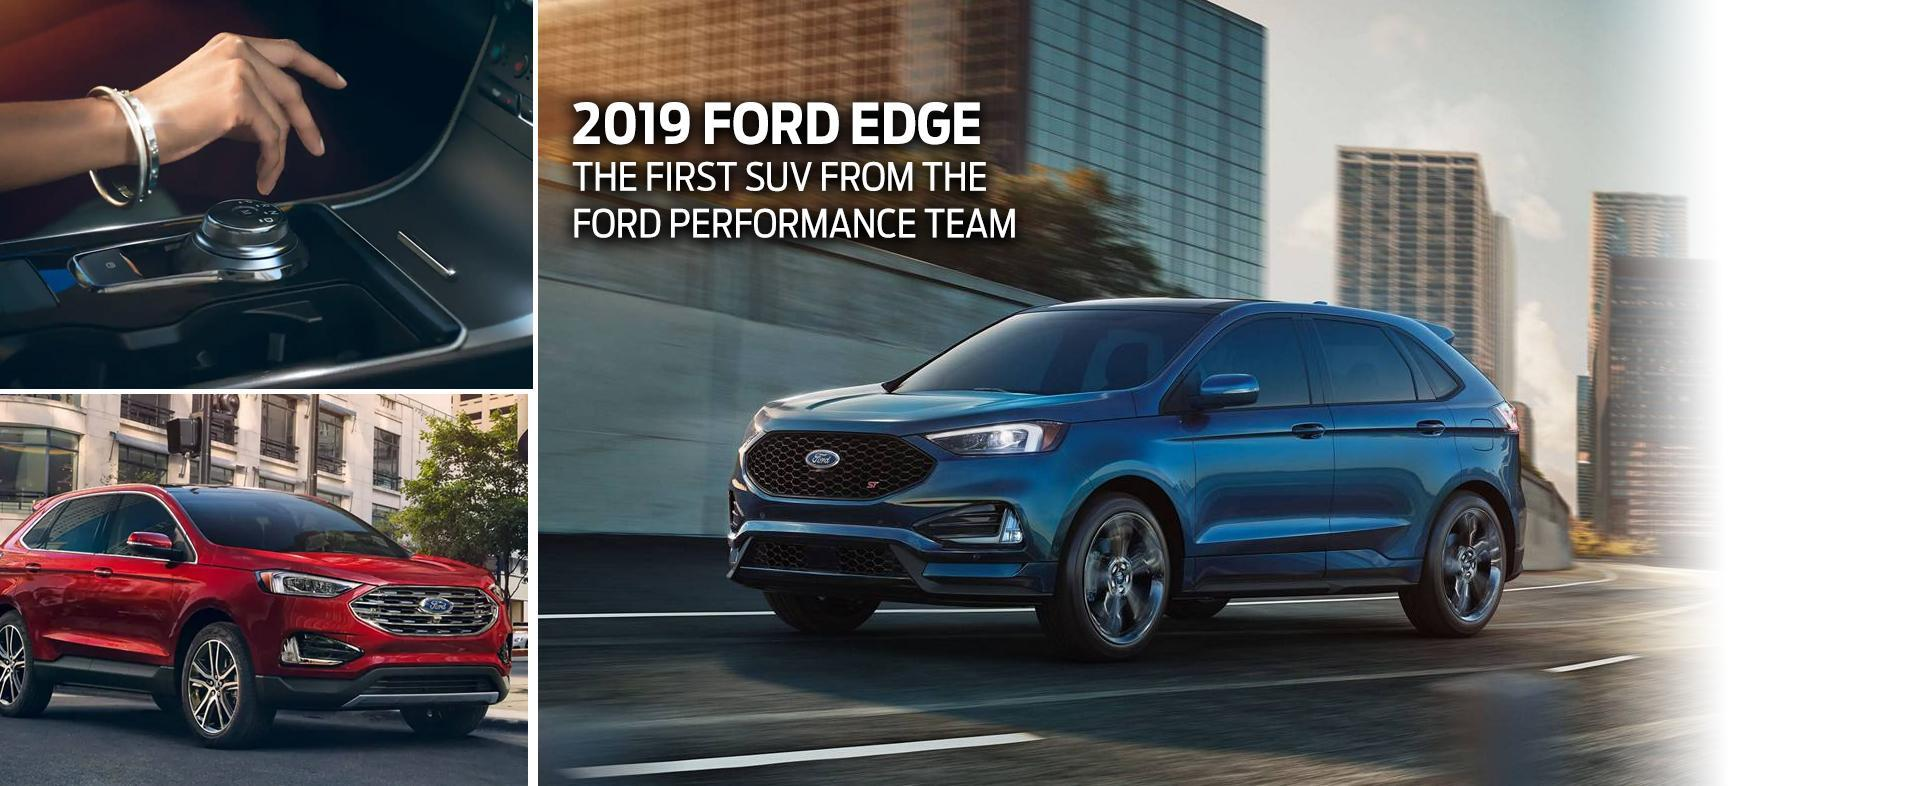 Ford Home | Taylor Ford Amherst | Amherst Ford Dealership  2019 Edge